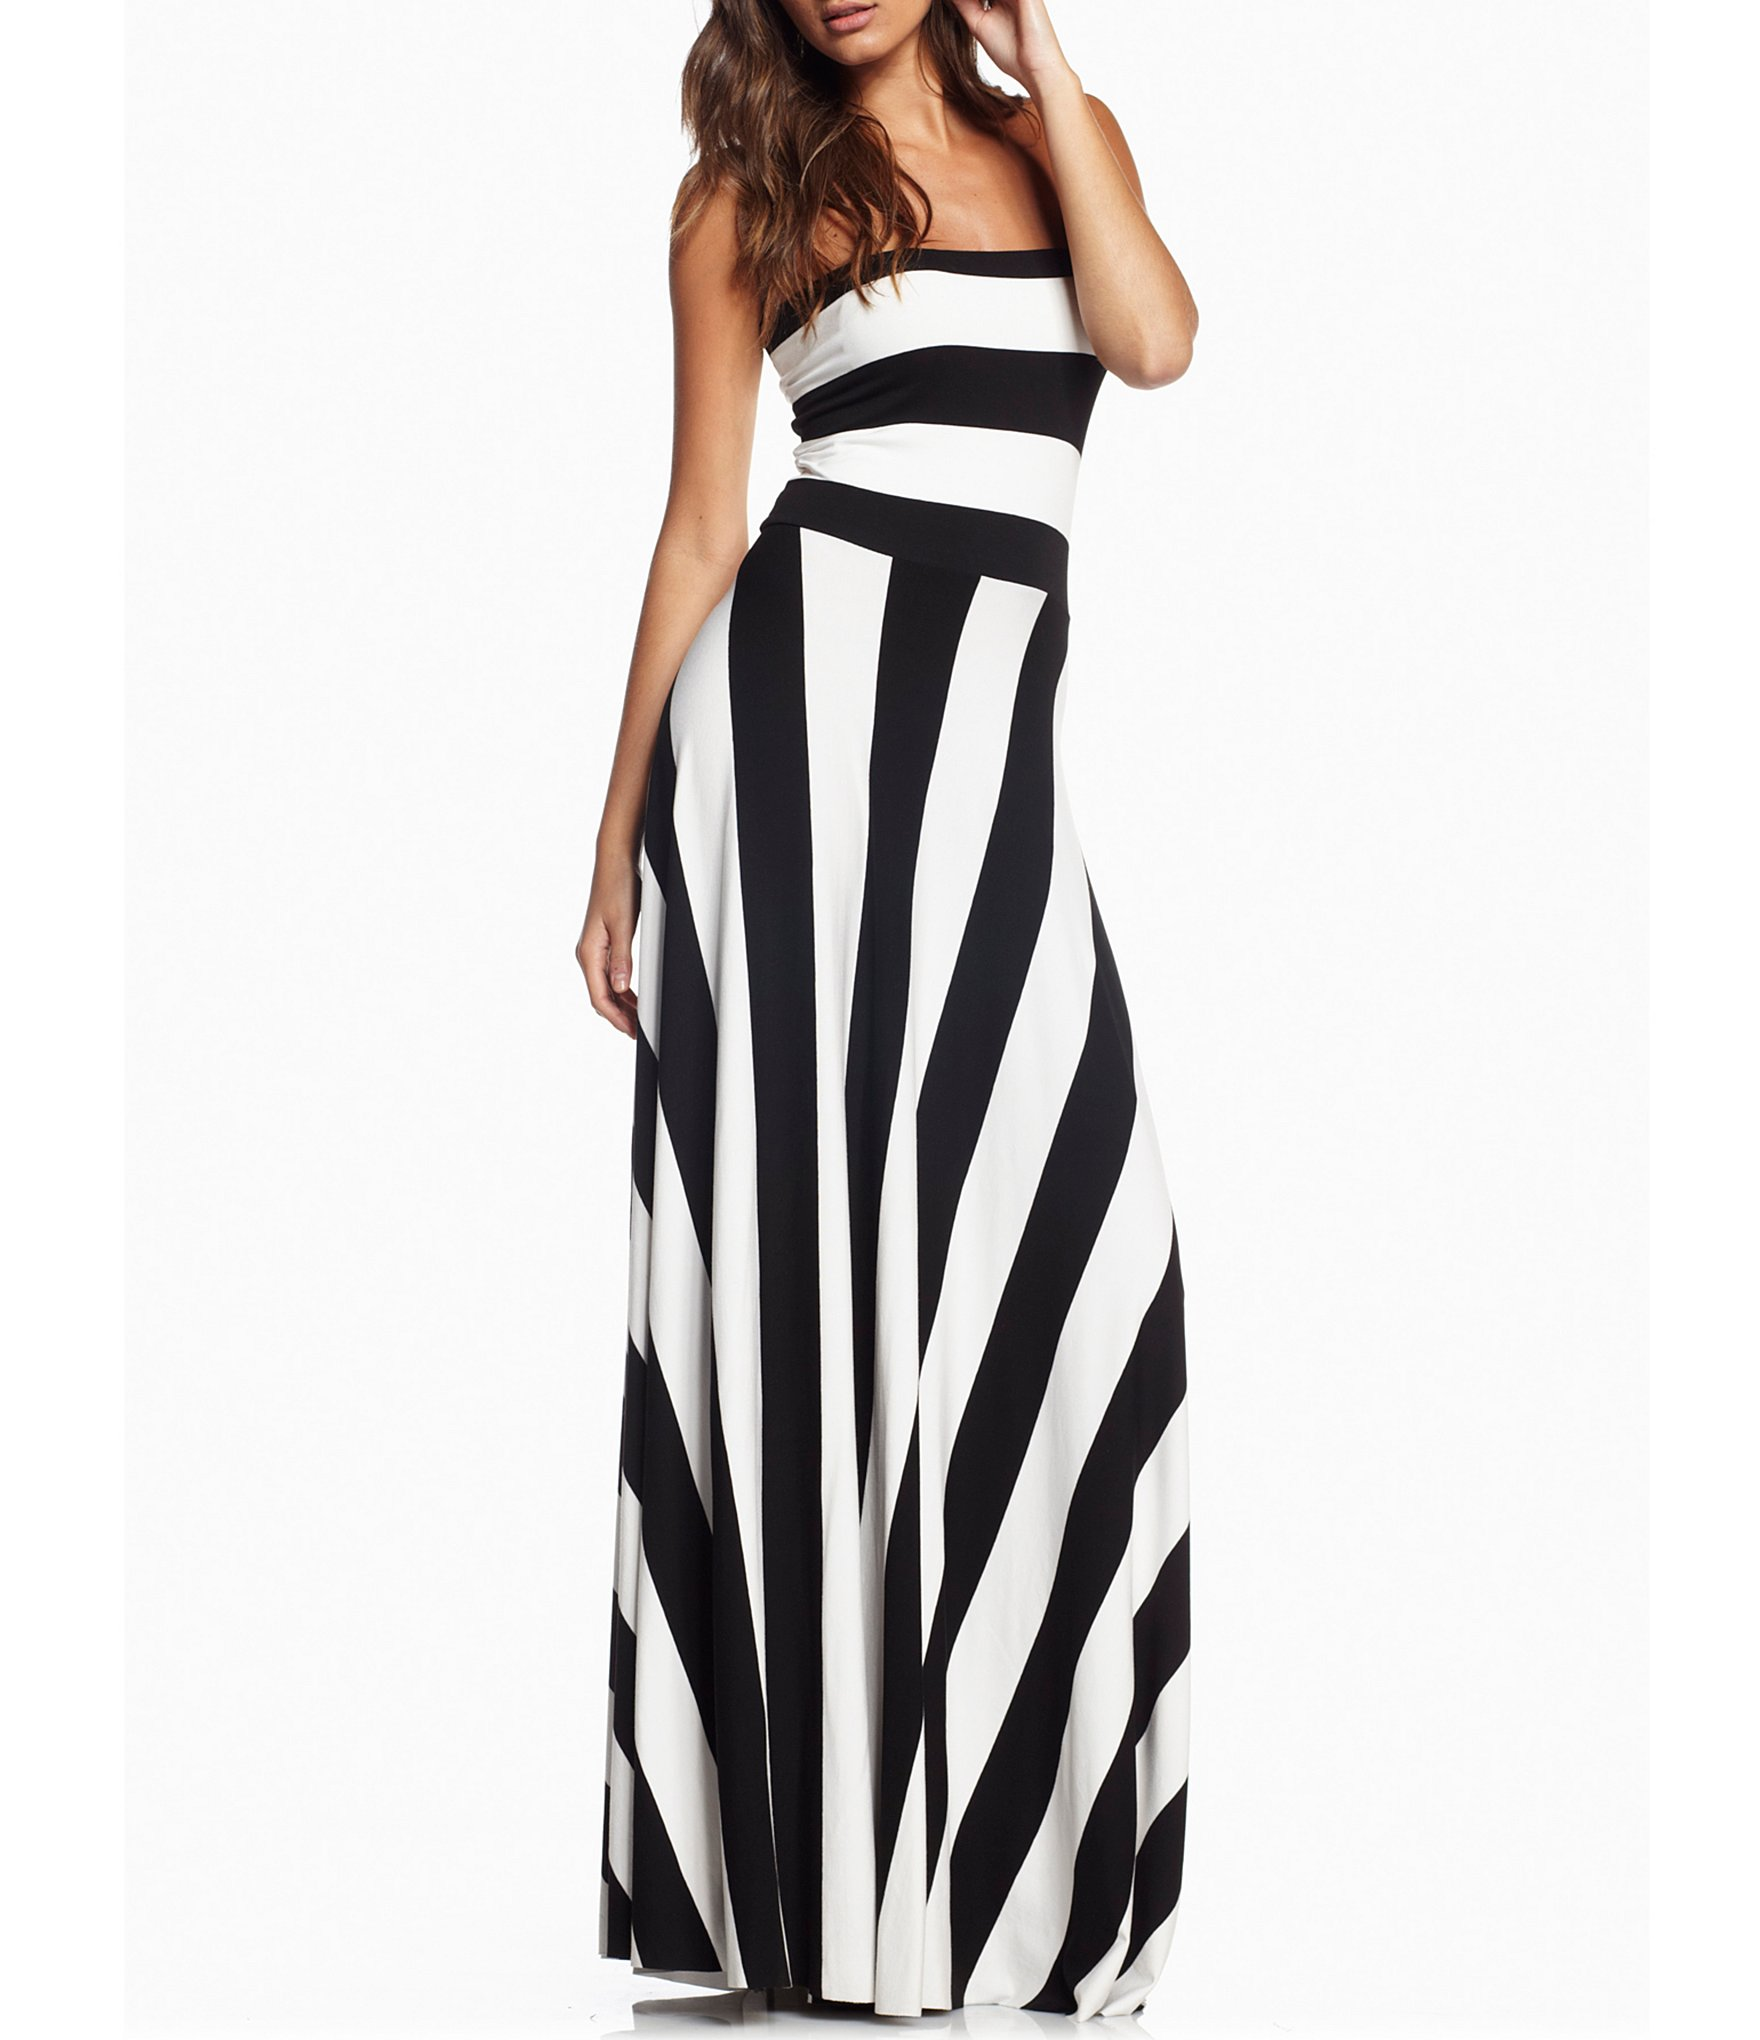 Elan Stripe Convertible Strapless Maxi Dress Dillard S